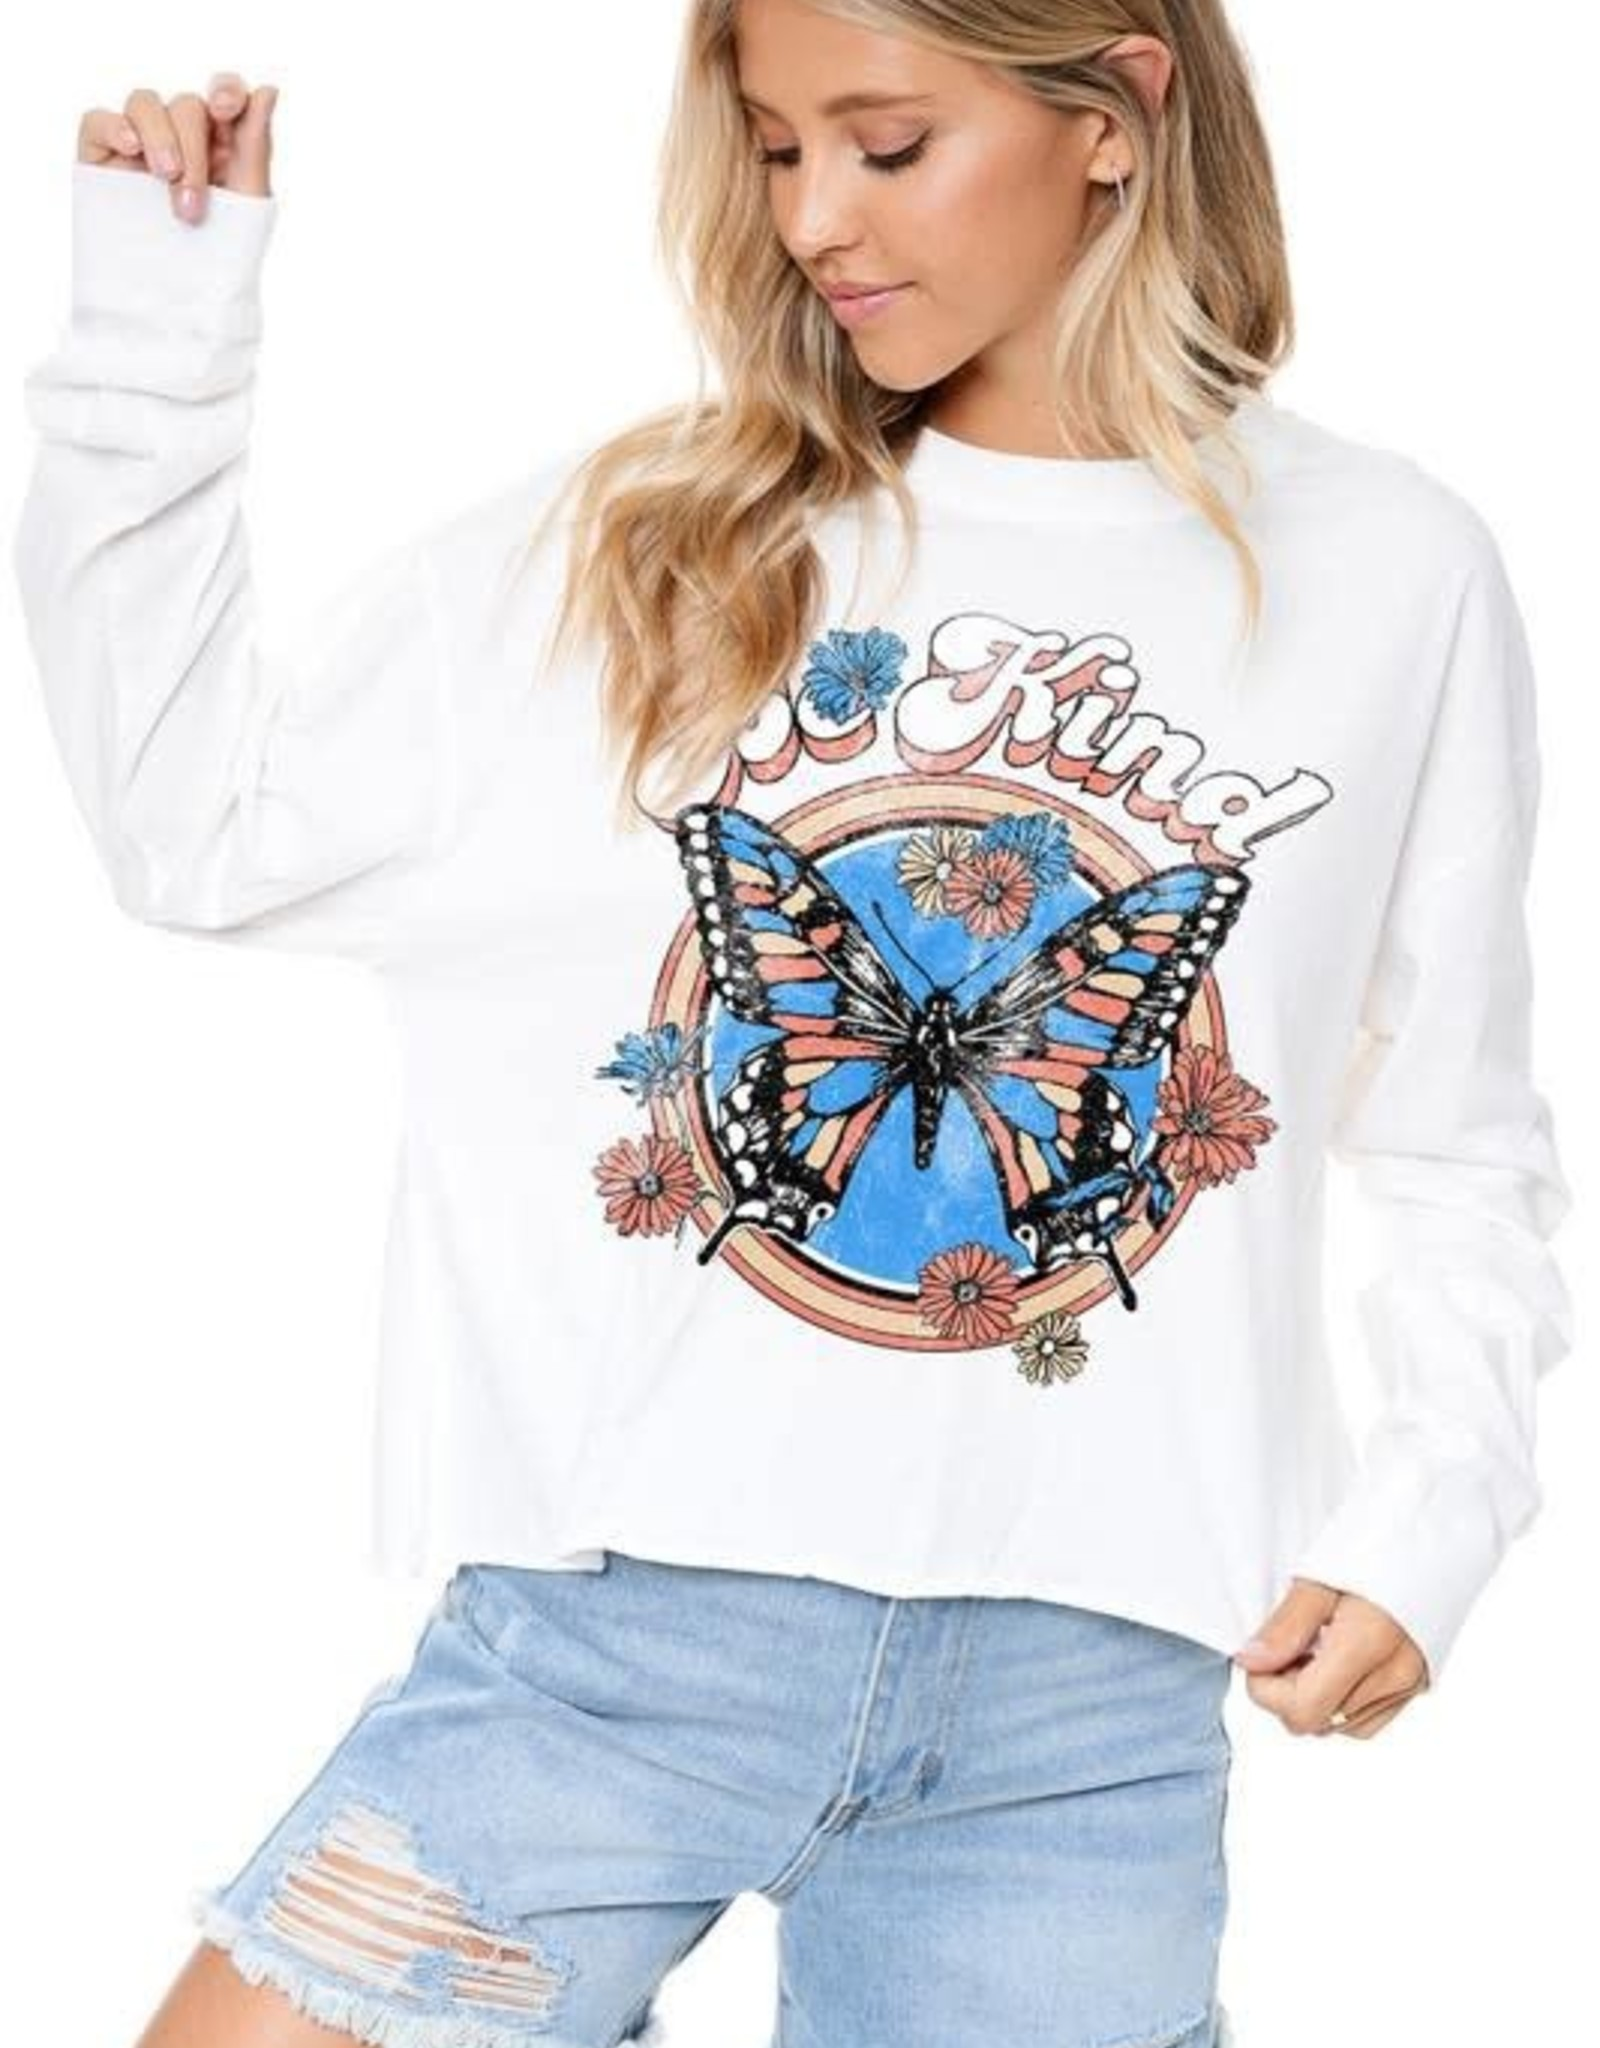 Be Kind Butterfly Graphic Tee